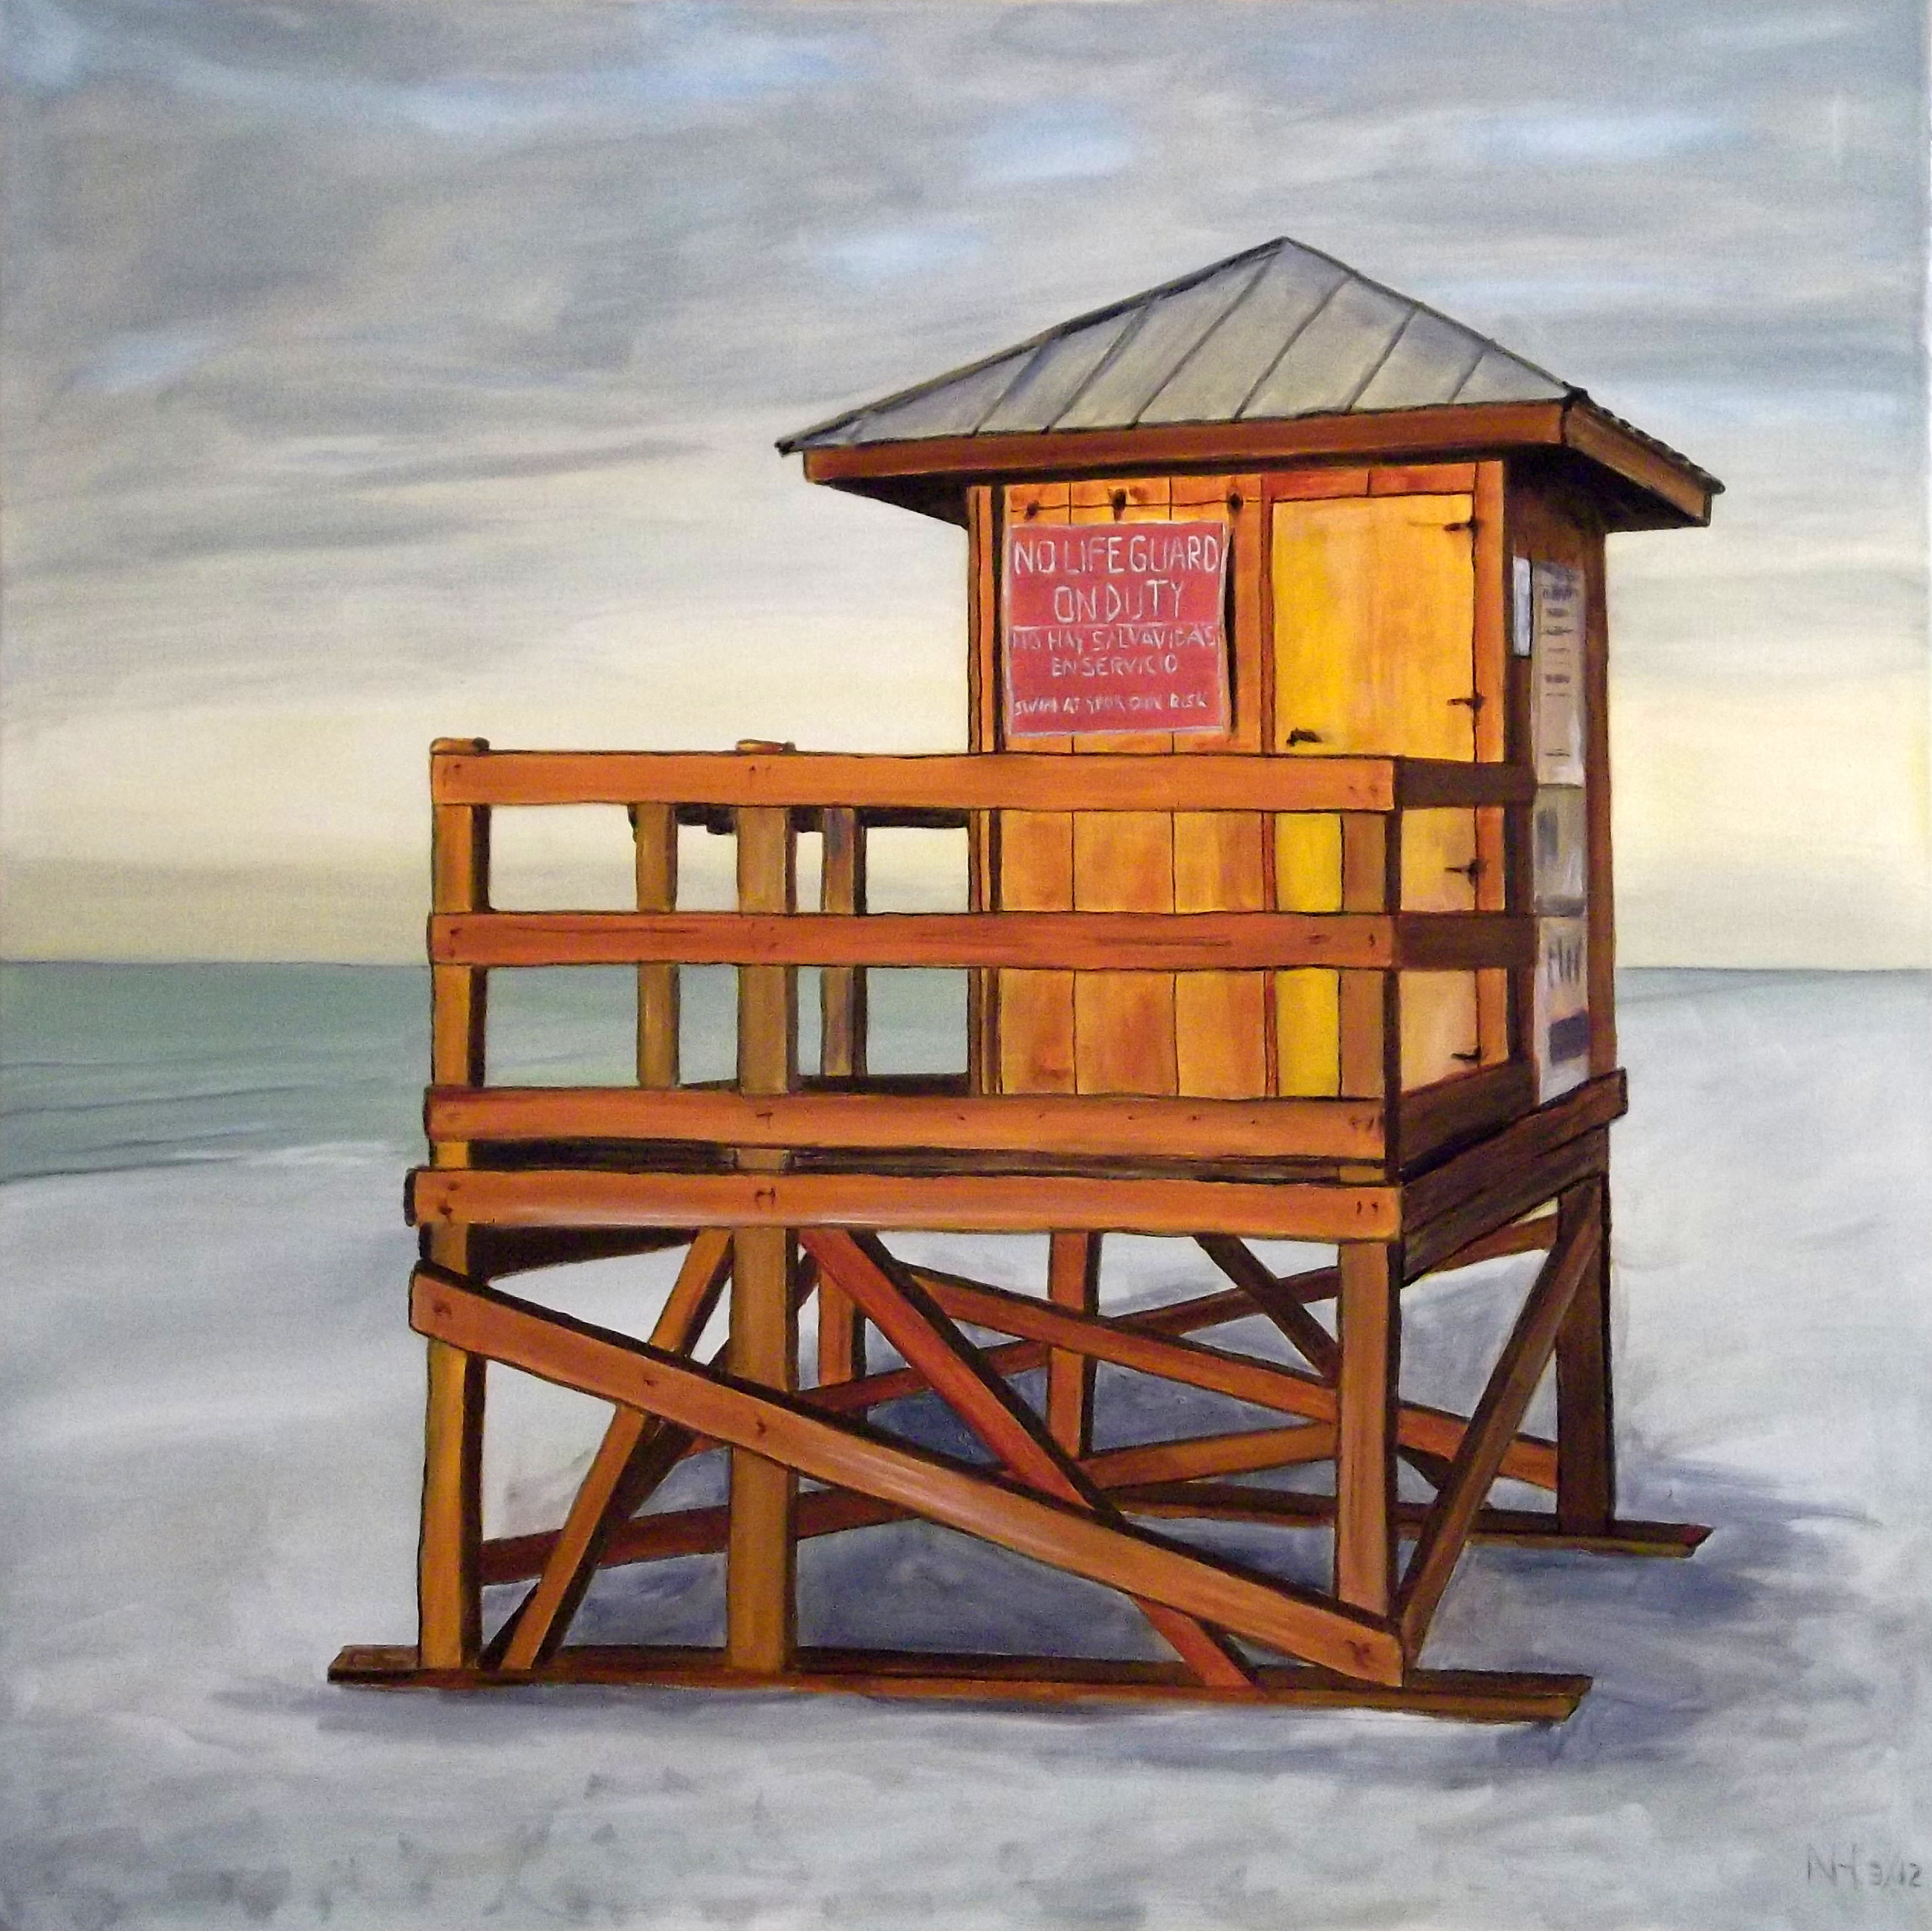 No Lifeguard, Oil on Canvas, 36 x 36 inches, March 2012